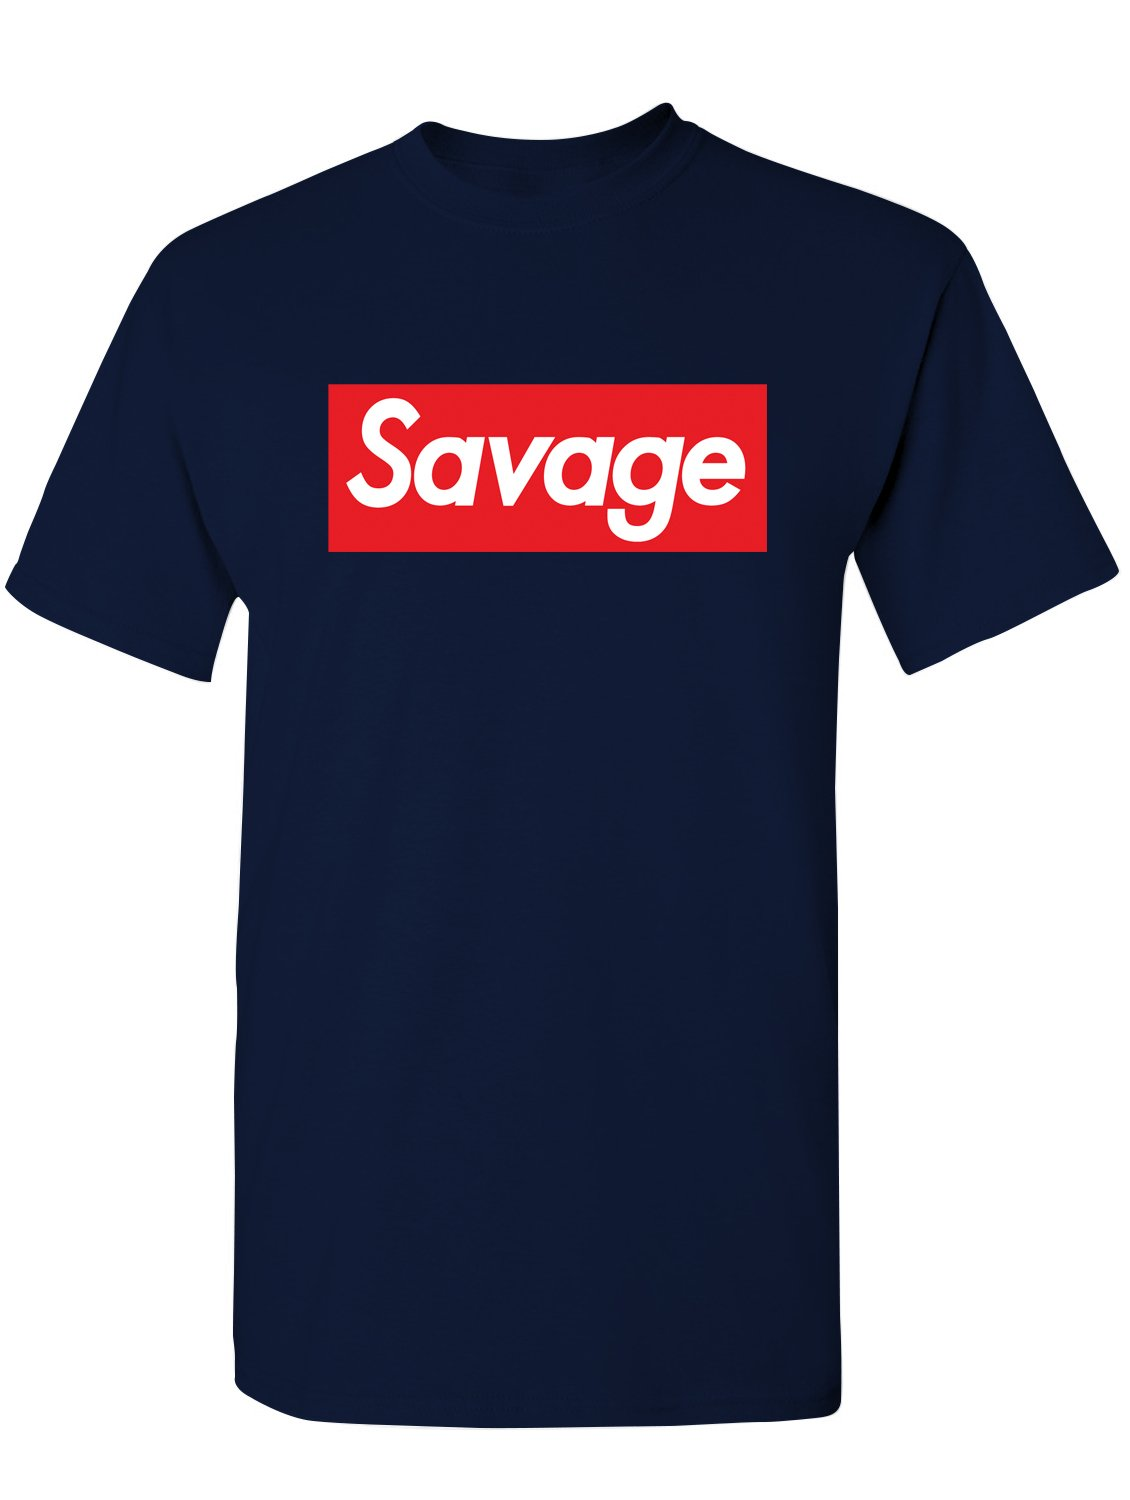 Manateez Men's Savage Skateboarding Tee Shirt Small Navy